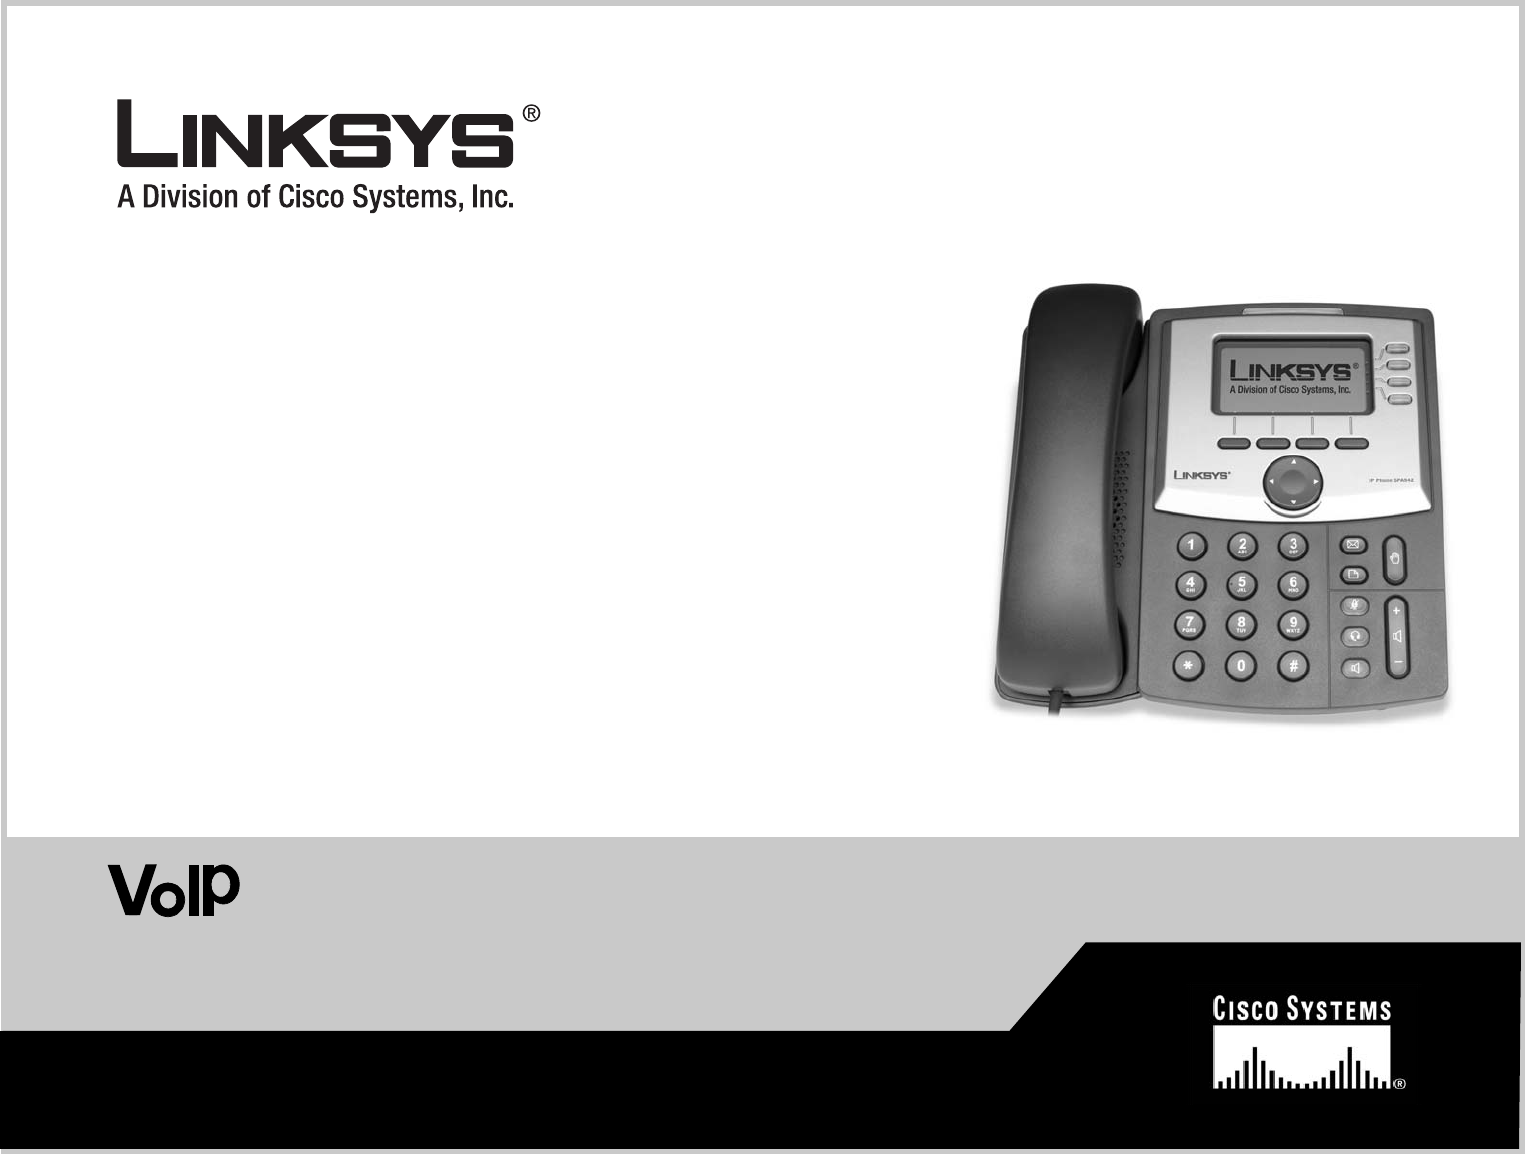 Linksys spa941 инструкция